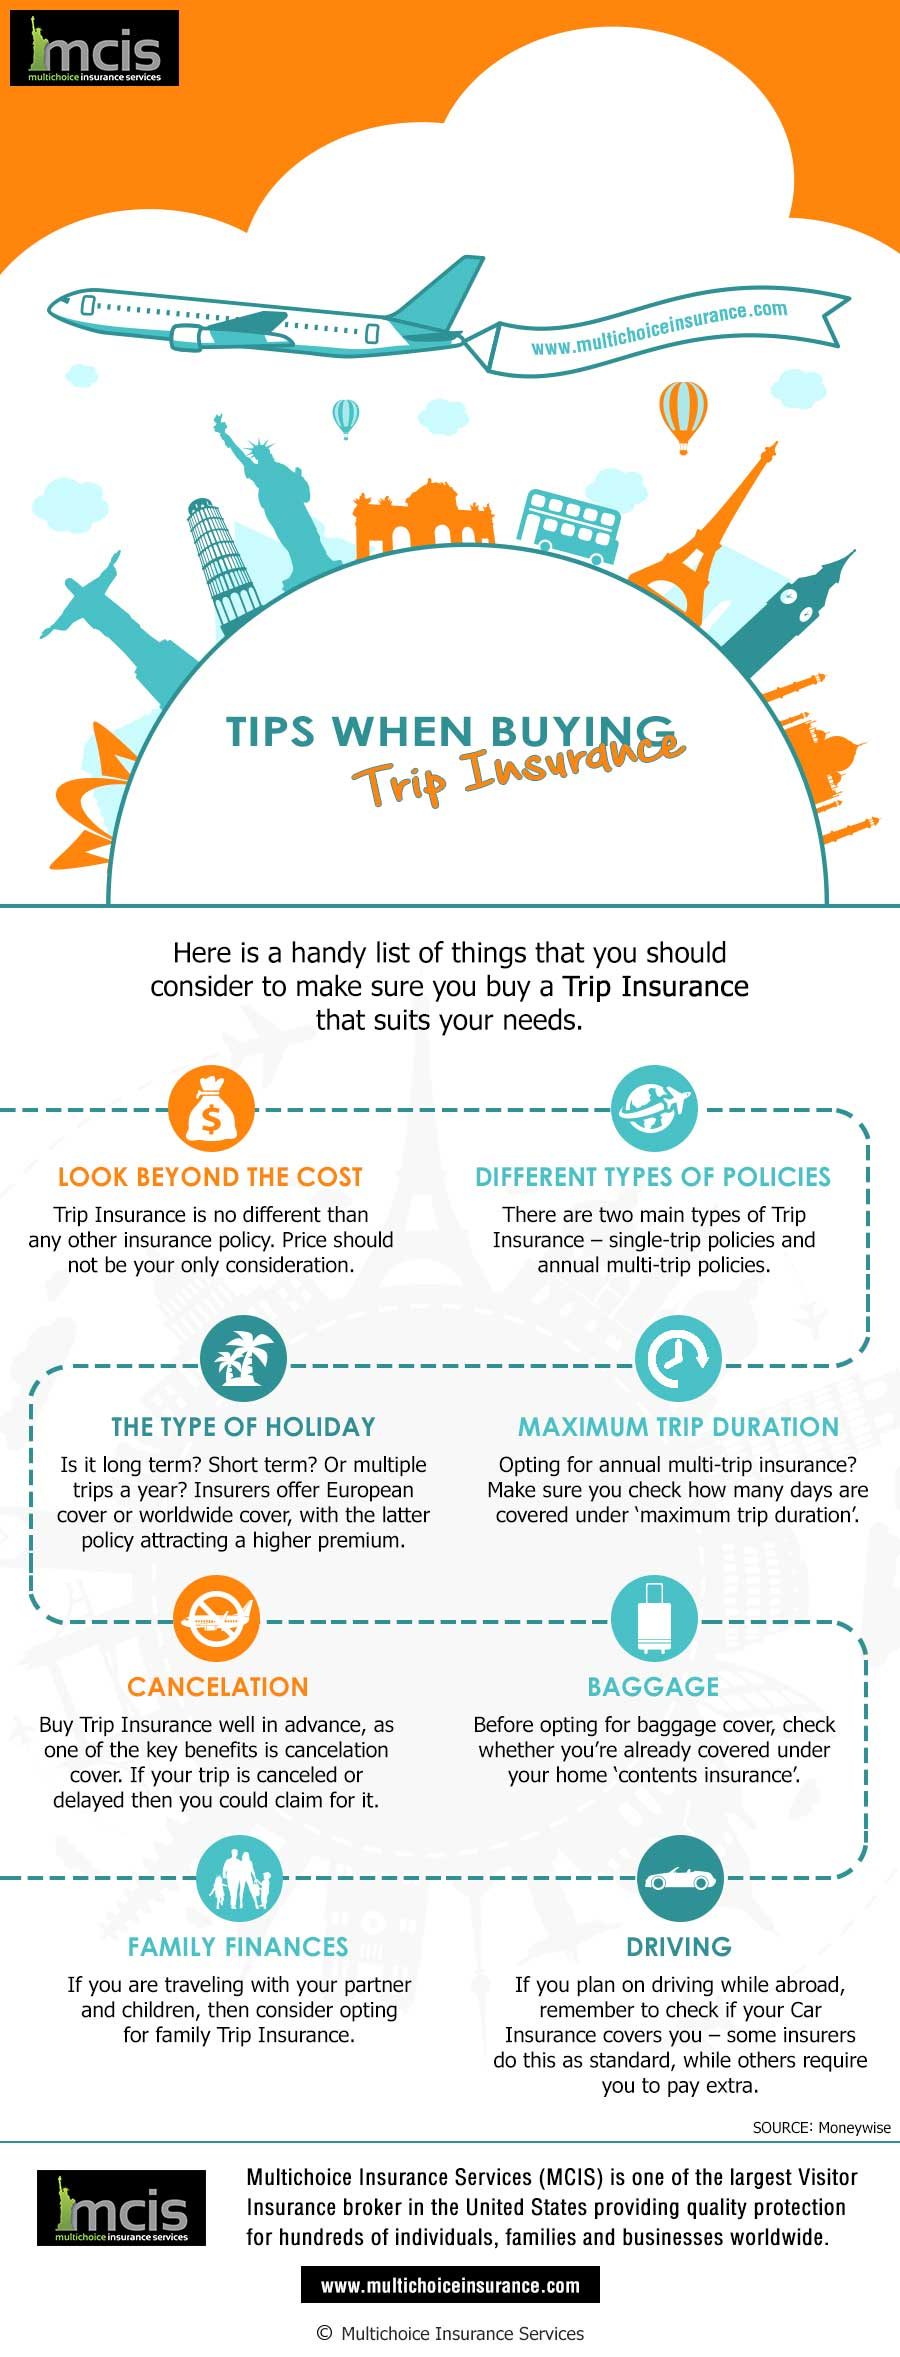 tips_when_buying_trip_insurance-infographic-plaza